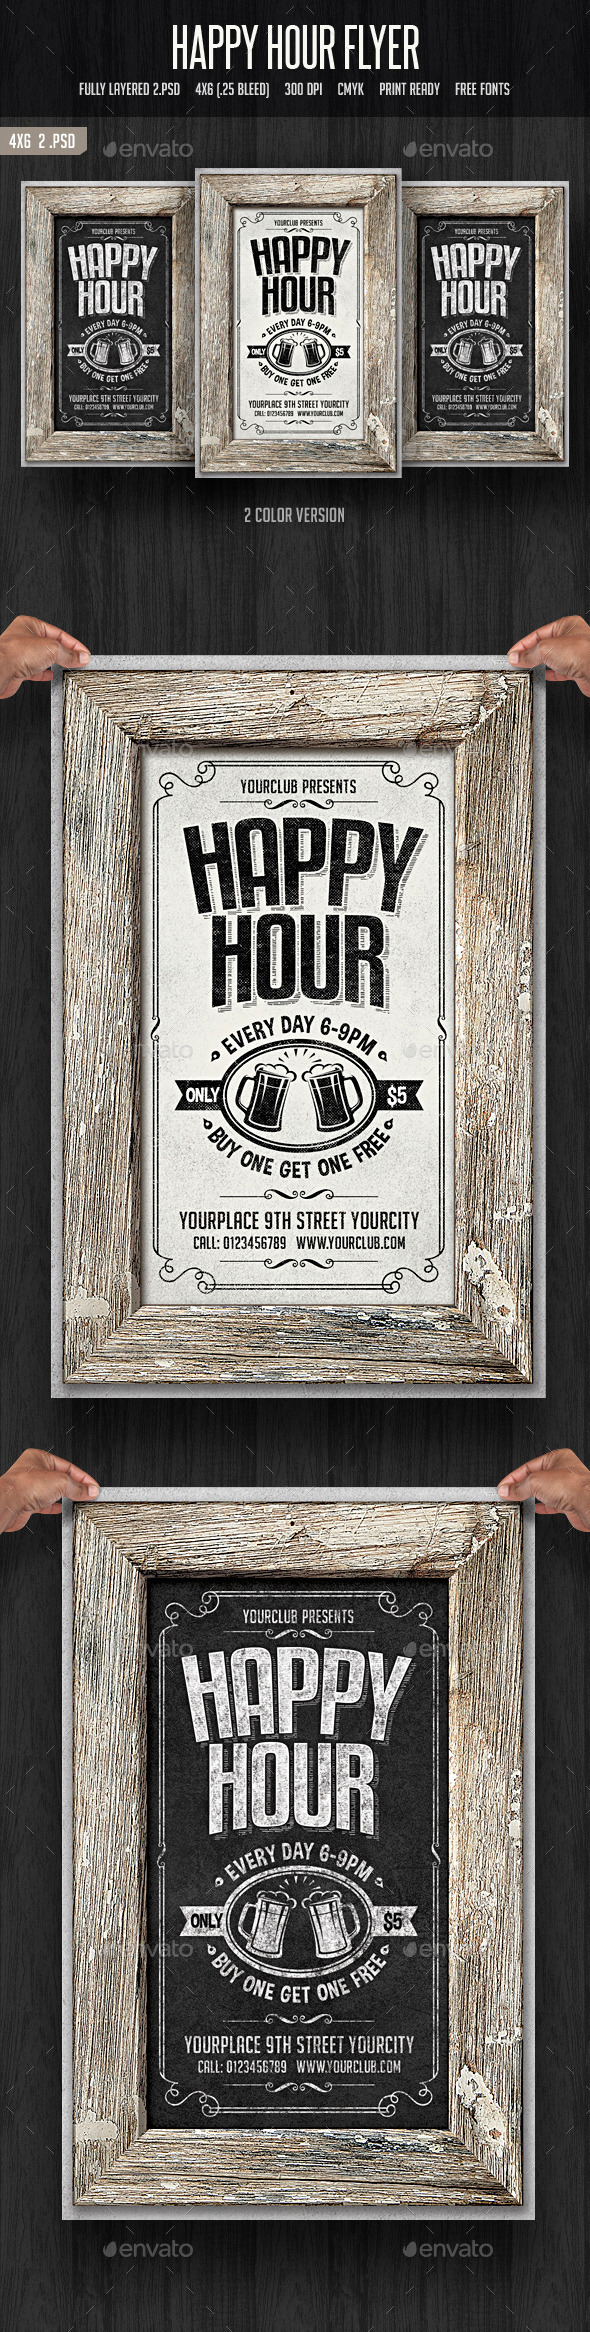 Happy Hour Flyer 2 - Clubs & Parties Events